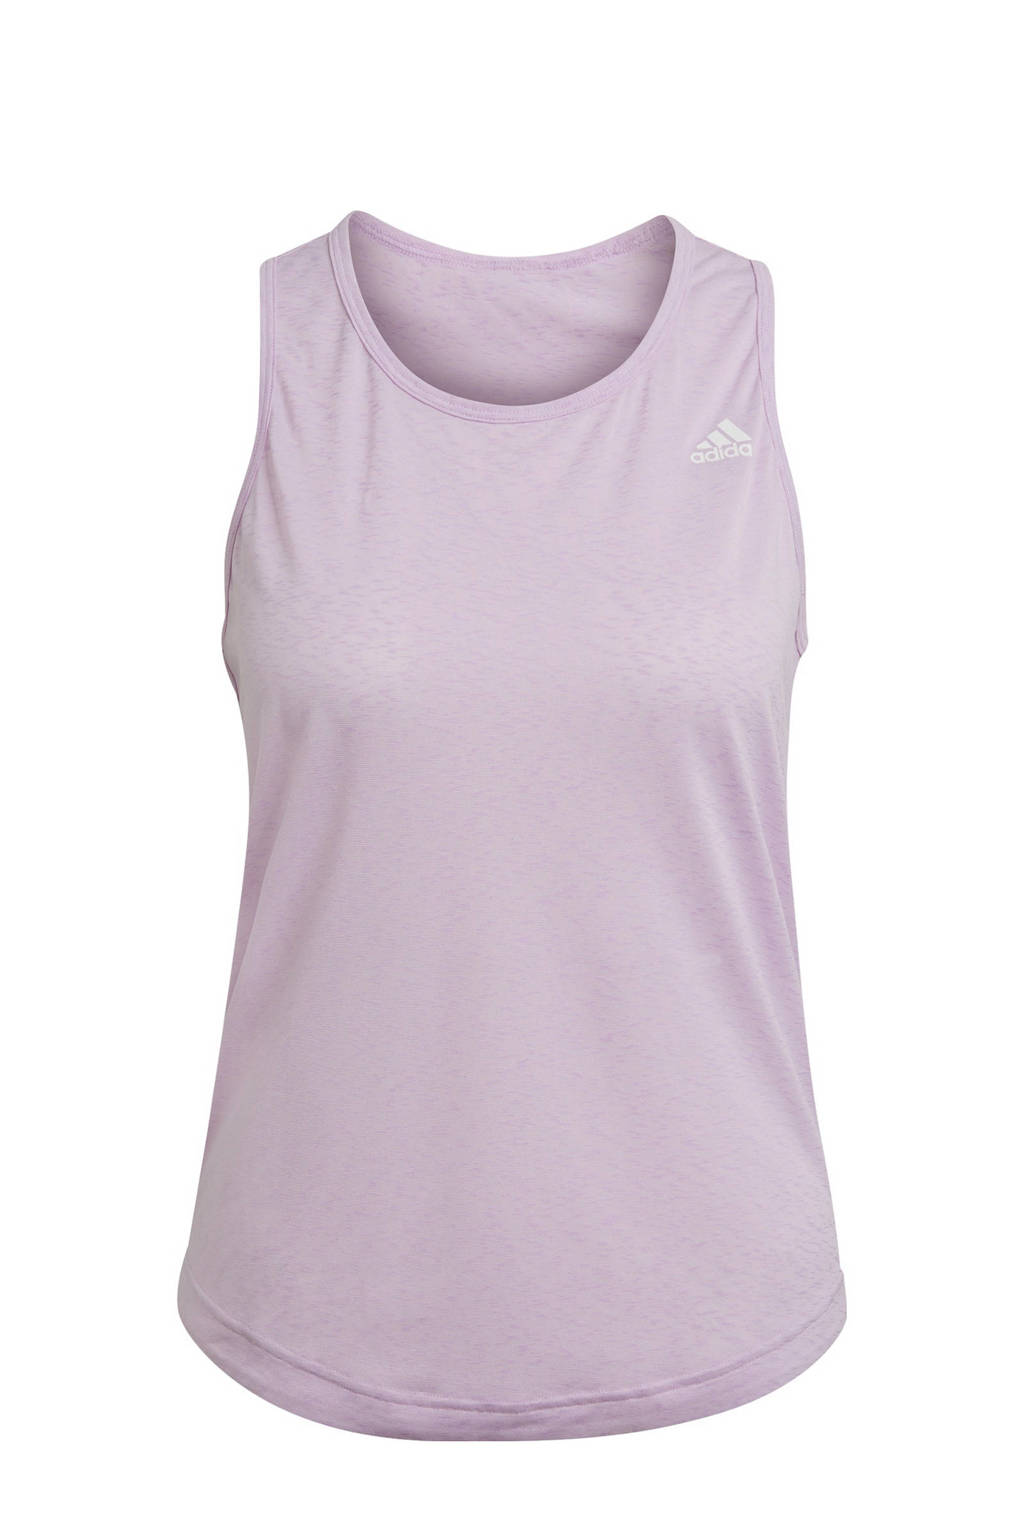 adidas Performance Dance Designed2Move sporttop lila/wit, Lila/wit